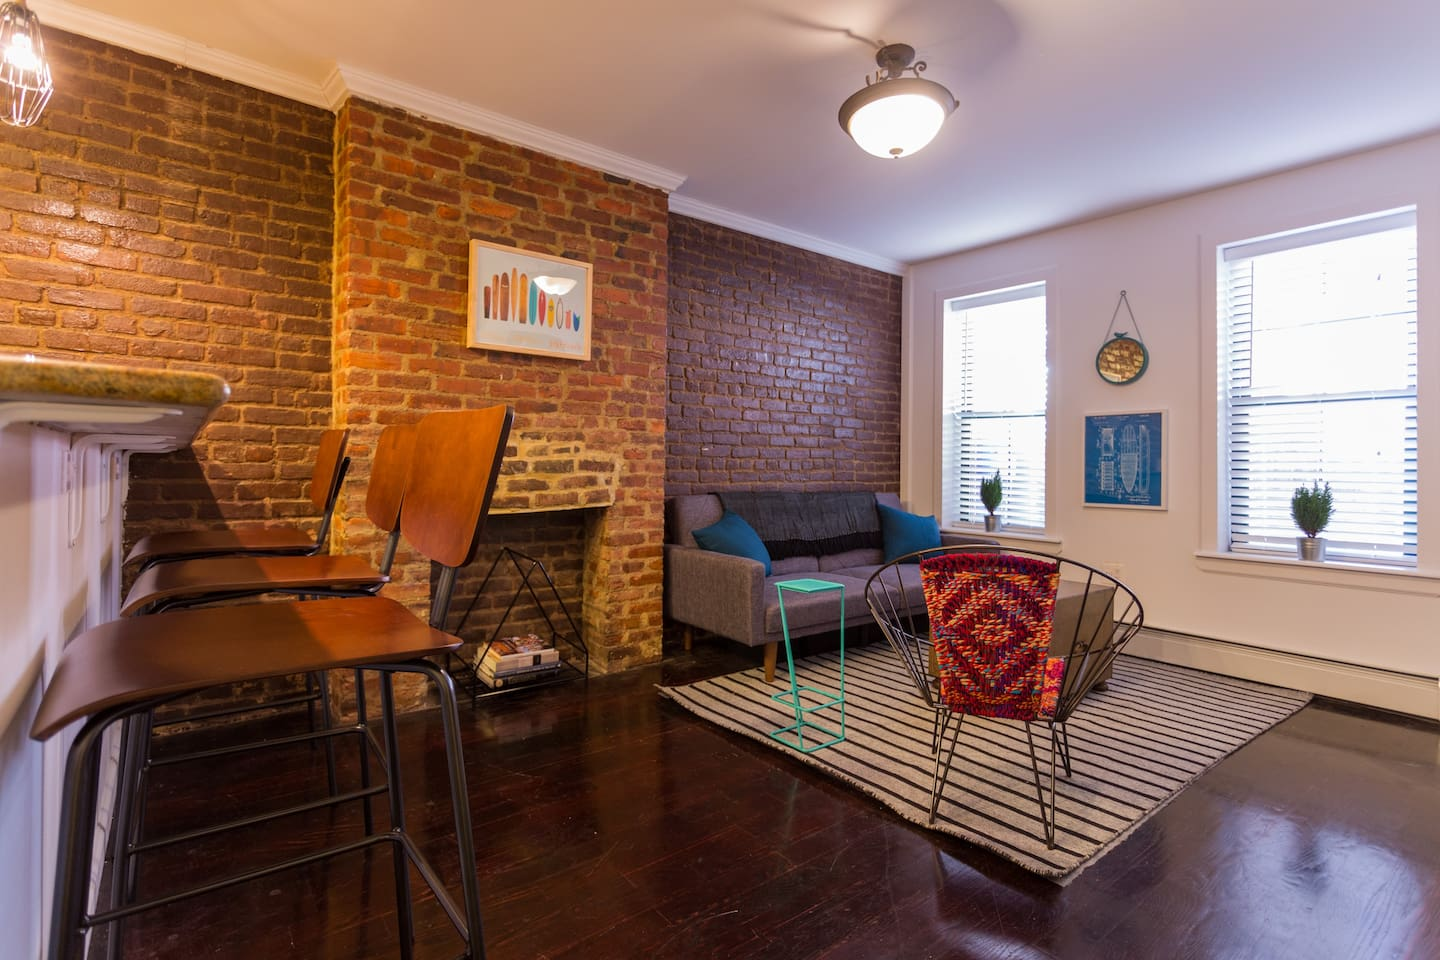 Large Brooklyn Apartment In Townhouse - Apartments for Rent in ...